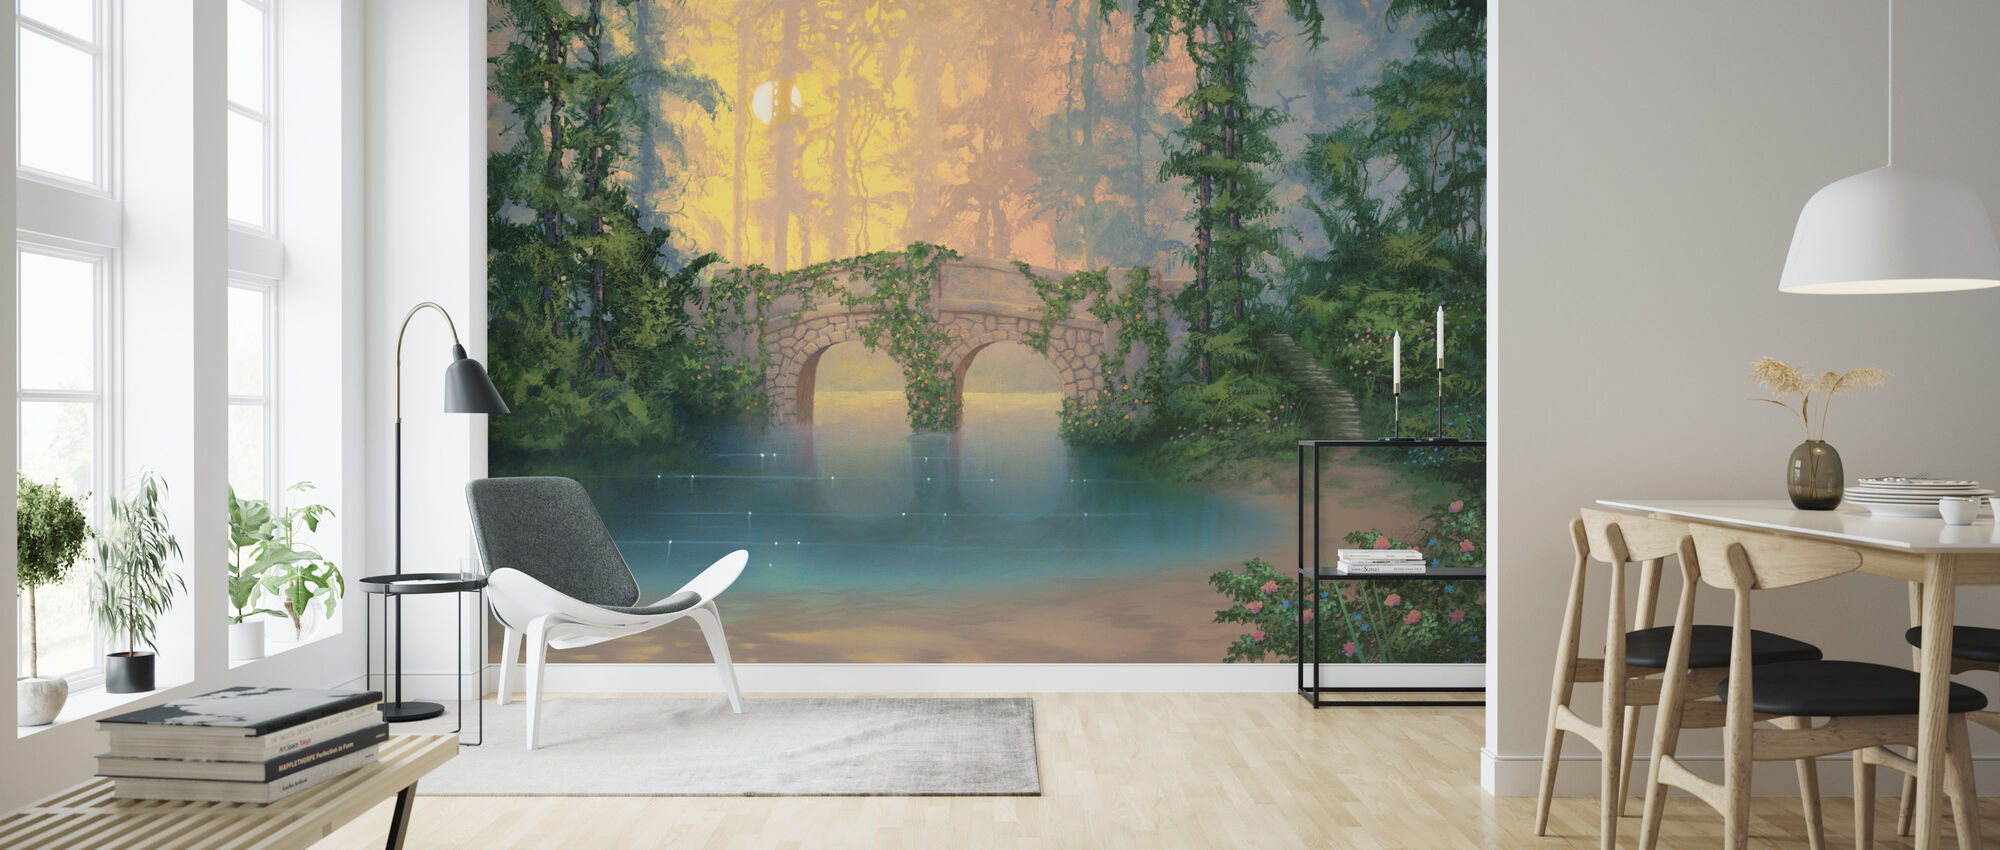 Heaven On Earth - Wallpaper - Living Room